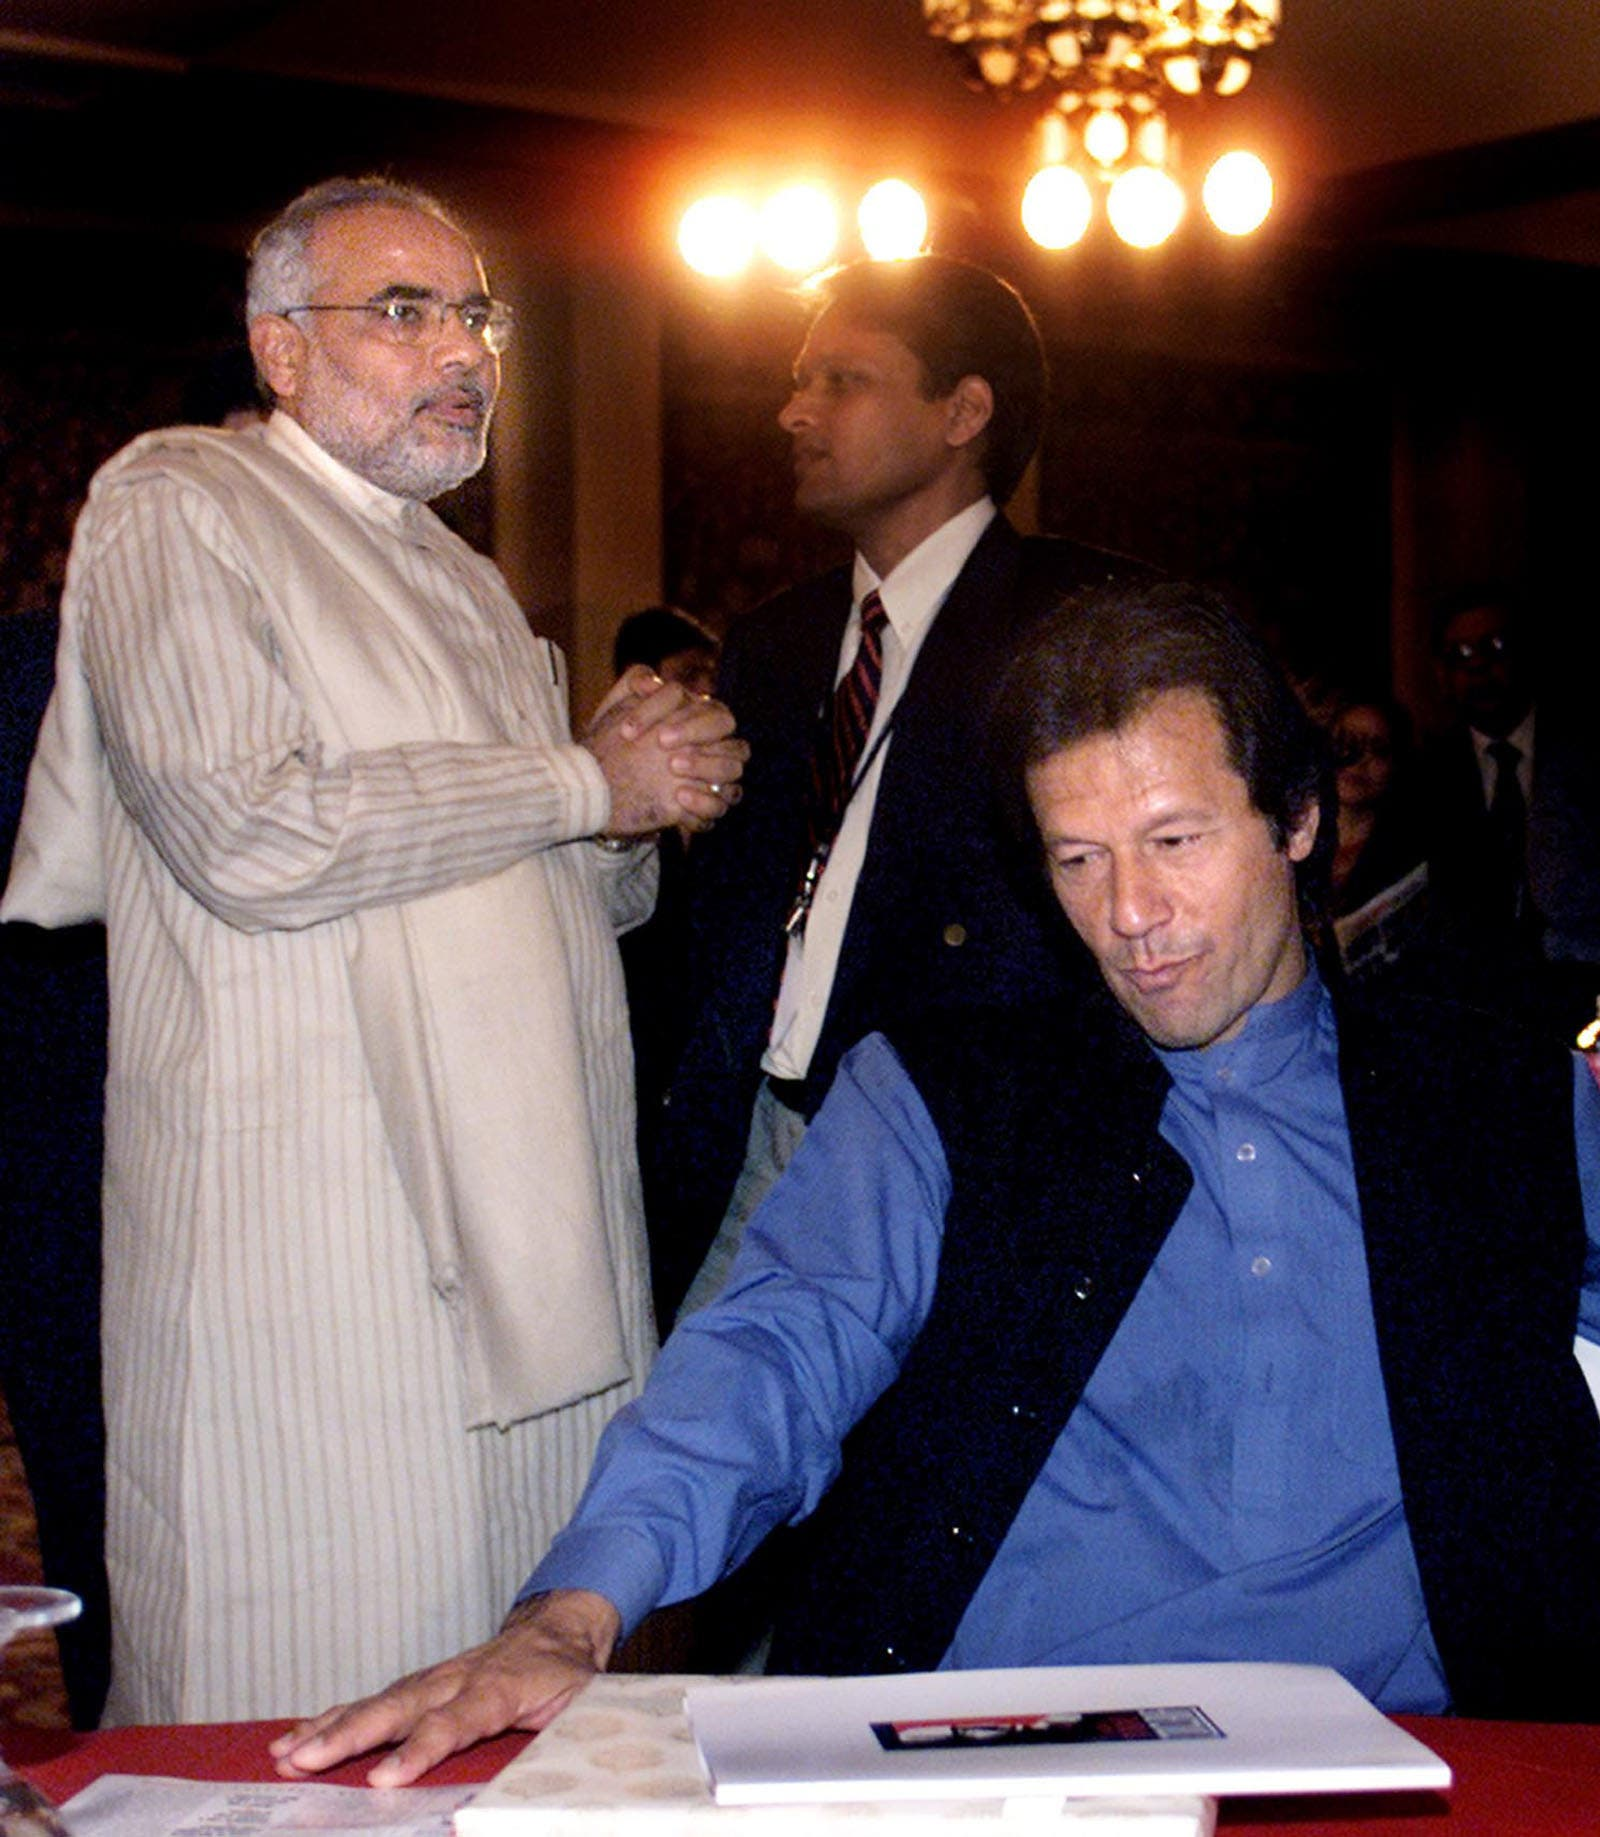 Then Gujarat Chief Minister Narendra Modi and Pakistani cricketer-turned politician Imran Khan in New Delhi on March 2, 2003. (File photo: AP)